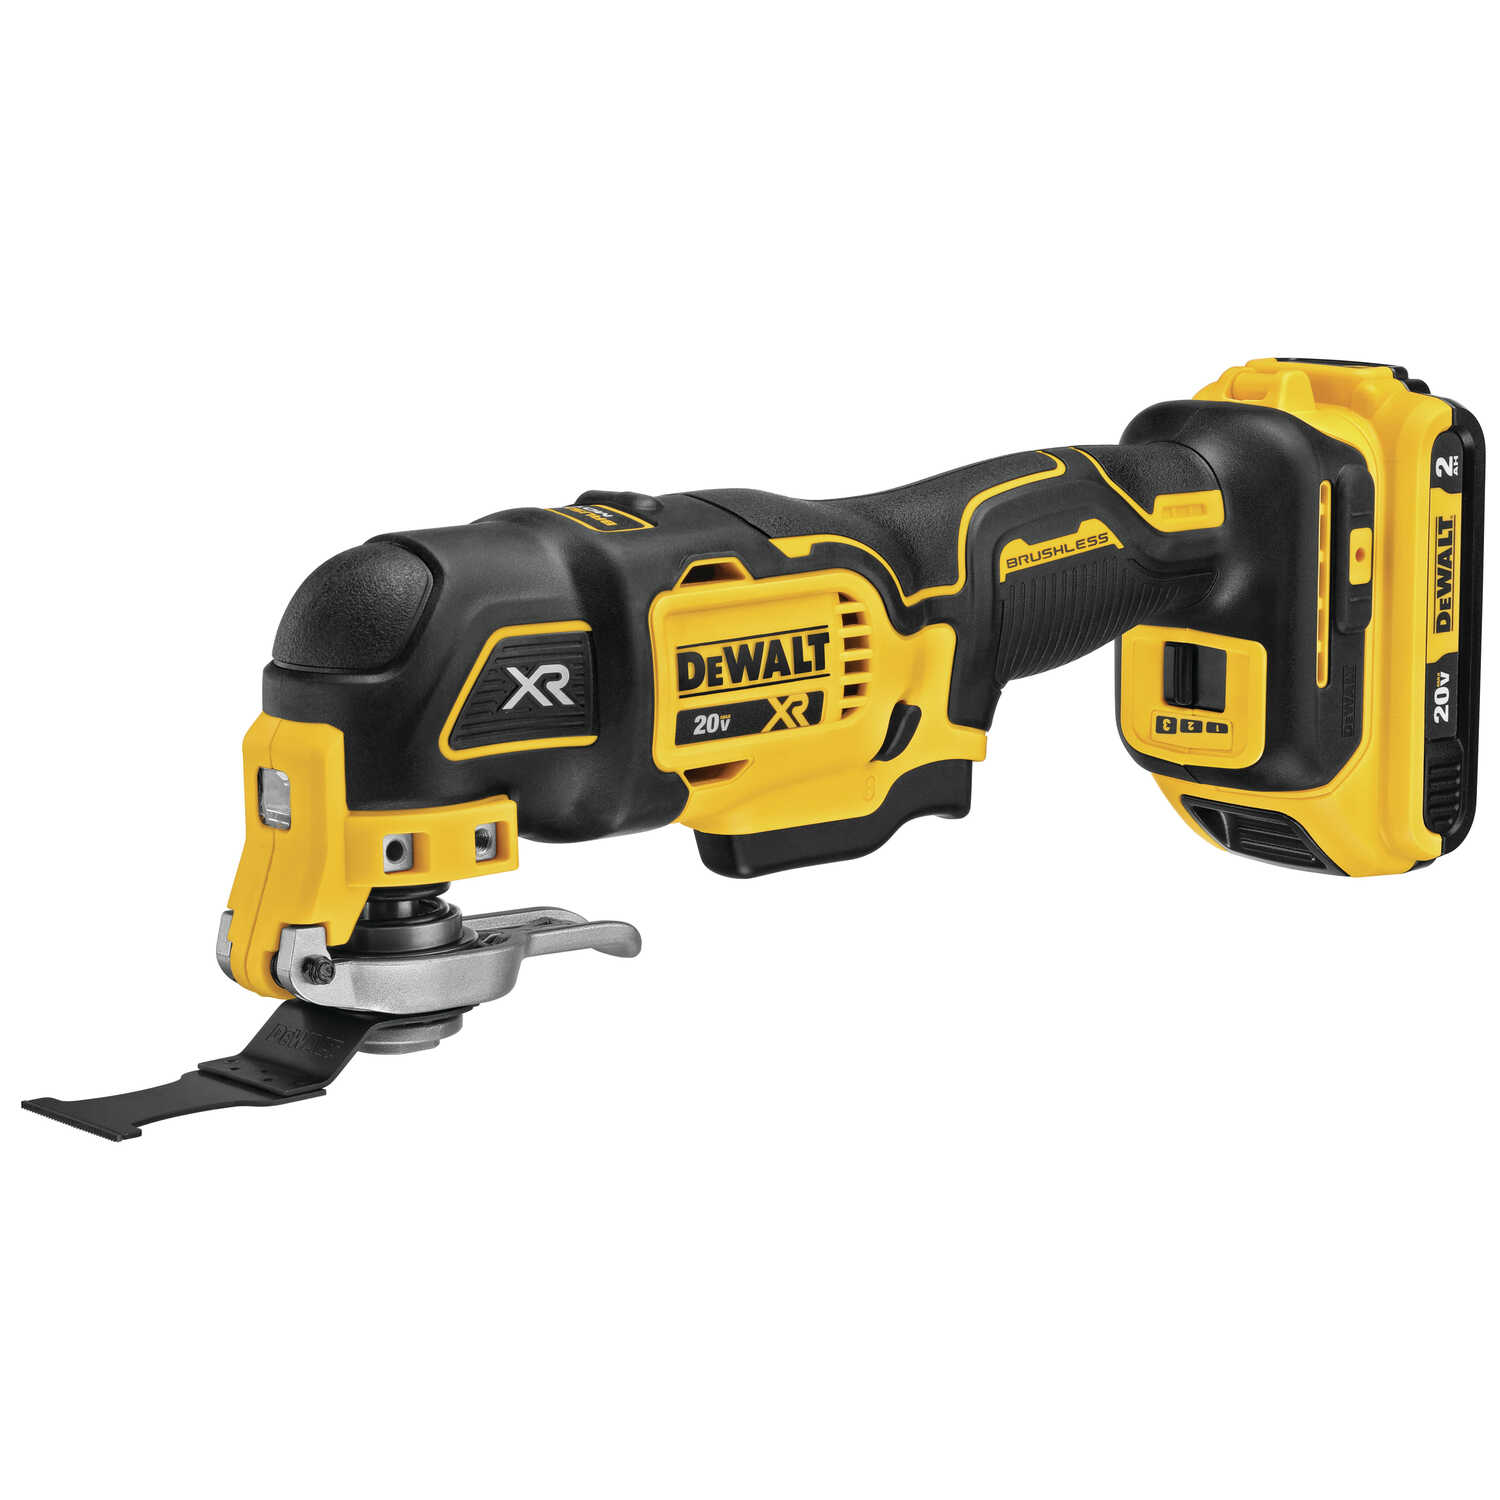 DeWalt  XR  3 amps 20 volt Cordless  Oscillating Multi-Tool  Kit 20000 opm Yellow  1 pc.